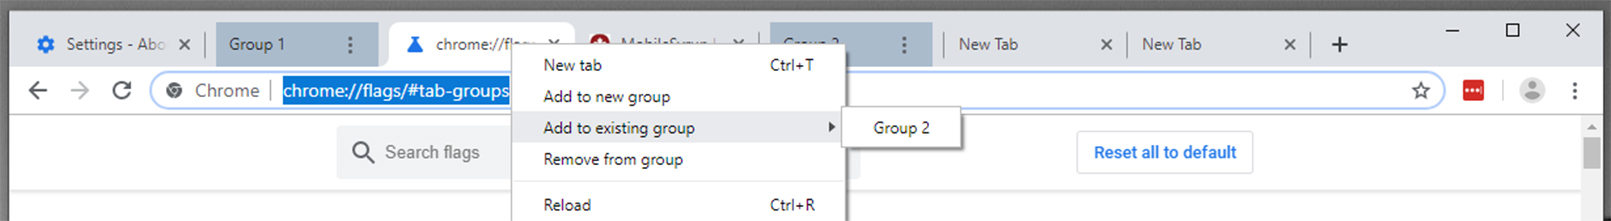 Google Chrome's 'tab grouping' feature gets headers